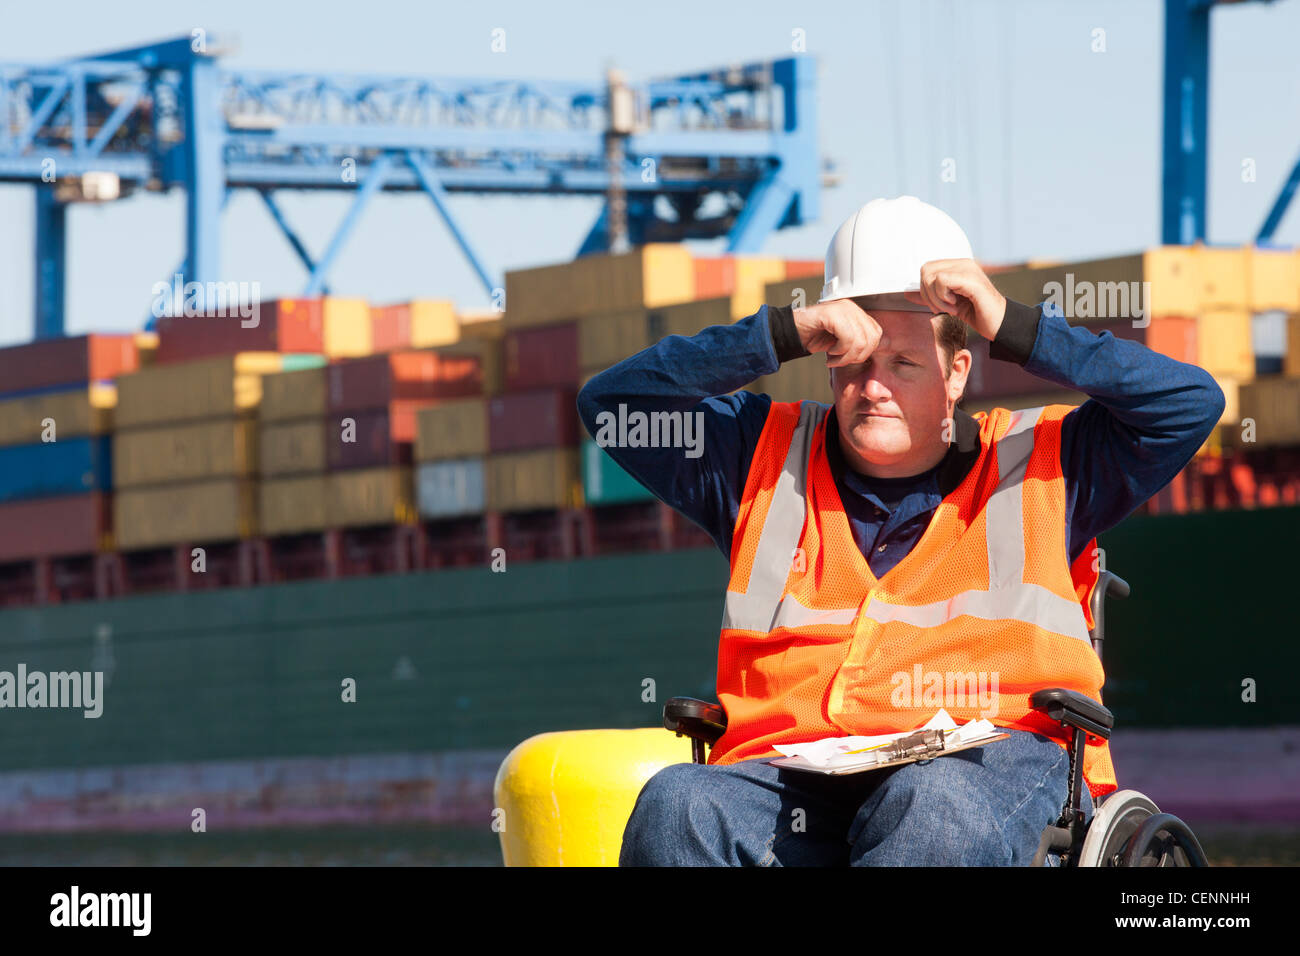 Transportation engineer in a wheelchair recording data for shipping containers and experiencing hot sun - Stock Image